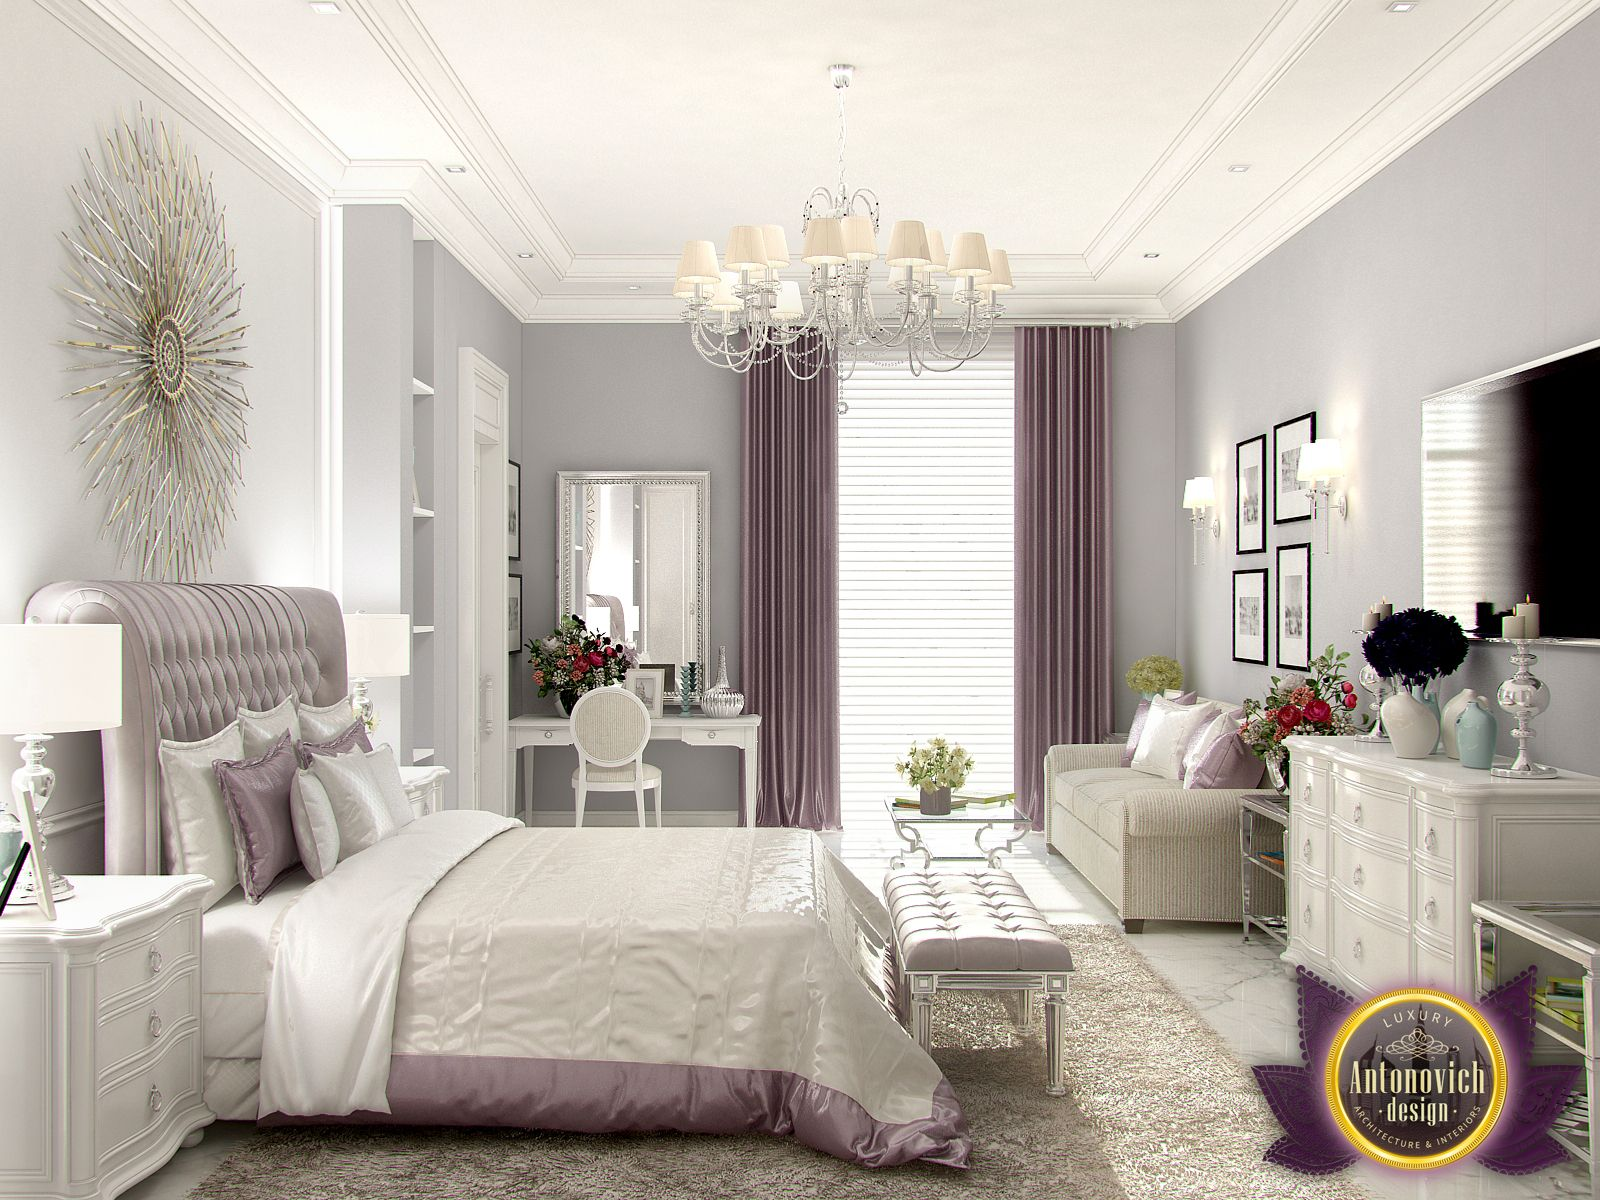 luxury bedroom furniture purple elements. Decorative Elements Fully Comply With The Traditions Of Modern Classics. Against Background Muted Shades Gray Walls Looked Juicy And Bright Luxury Bedroom Furniture Purple N